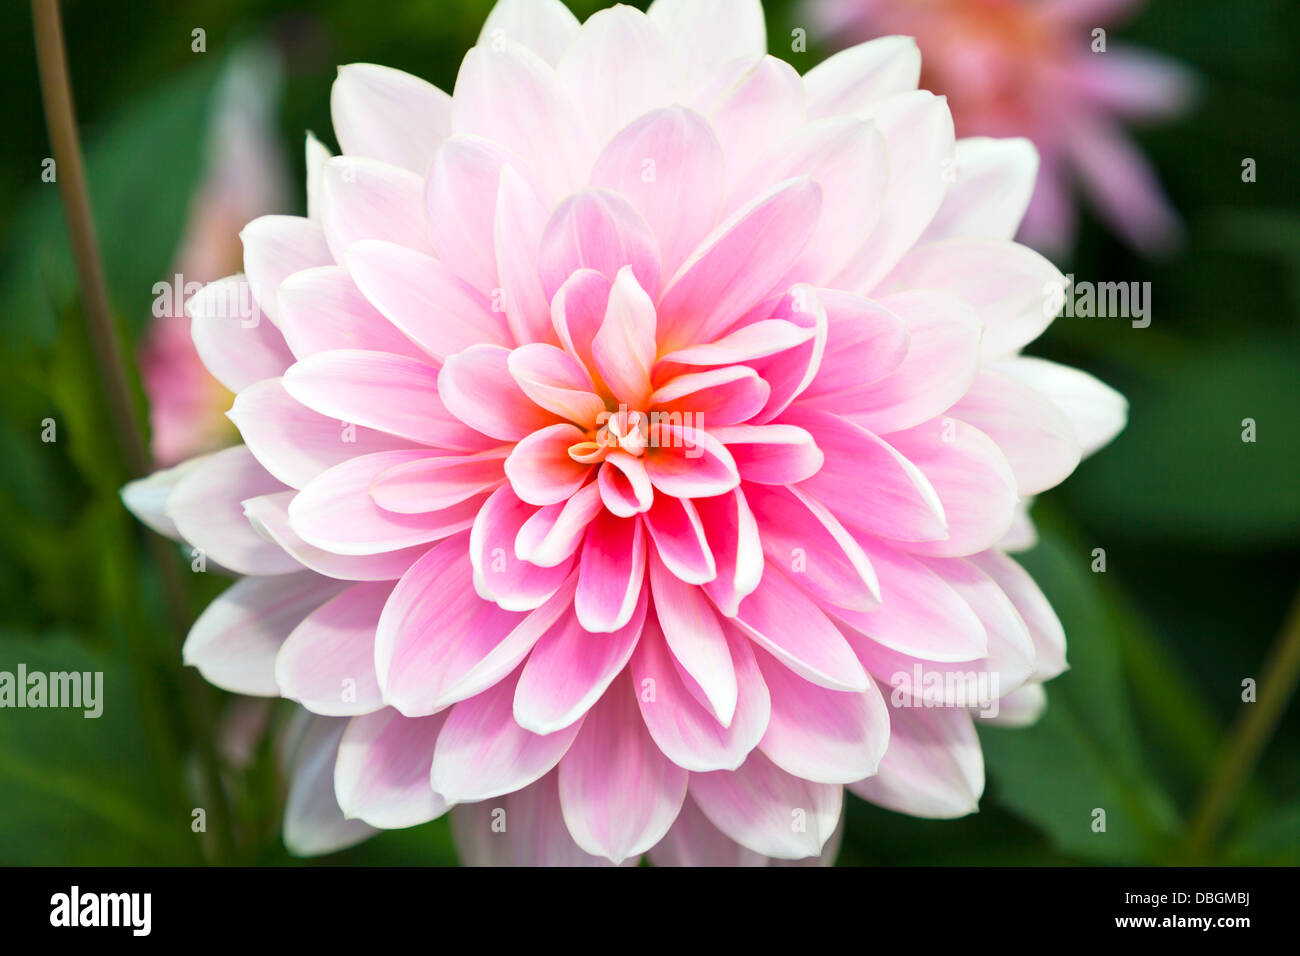 Typical english garden plants flowers pink chrysanthemum for Typical landscaping plants